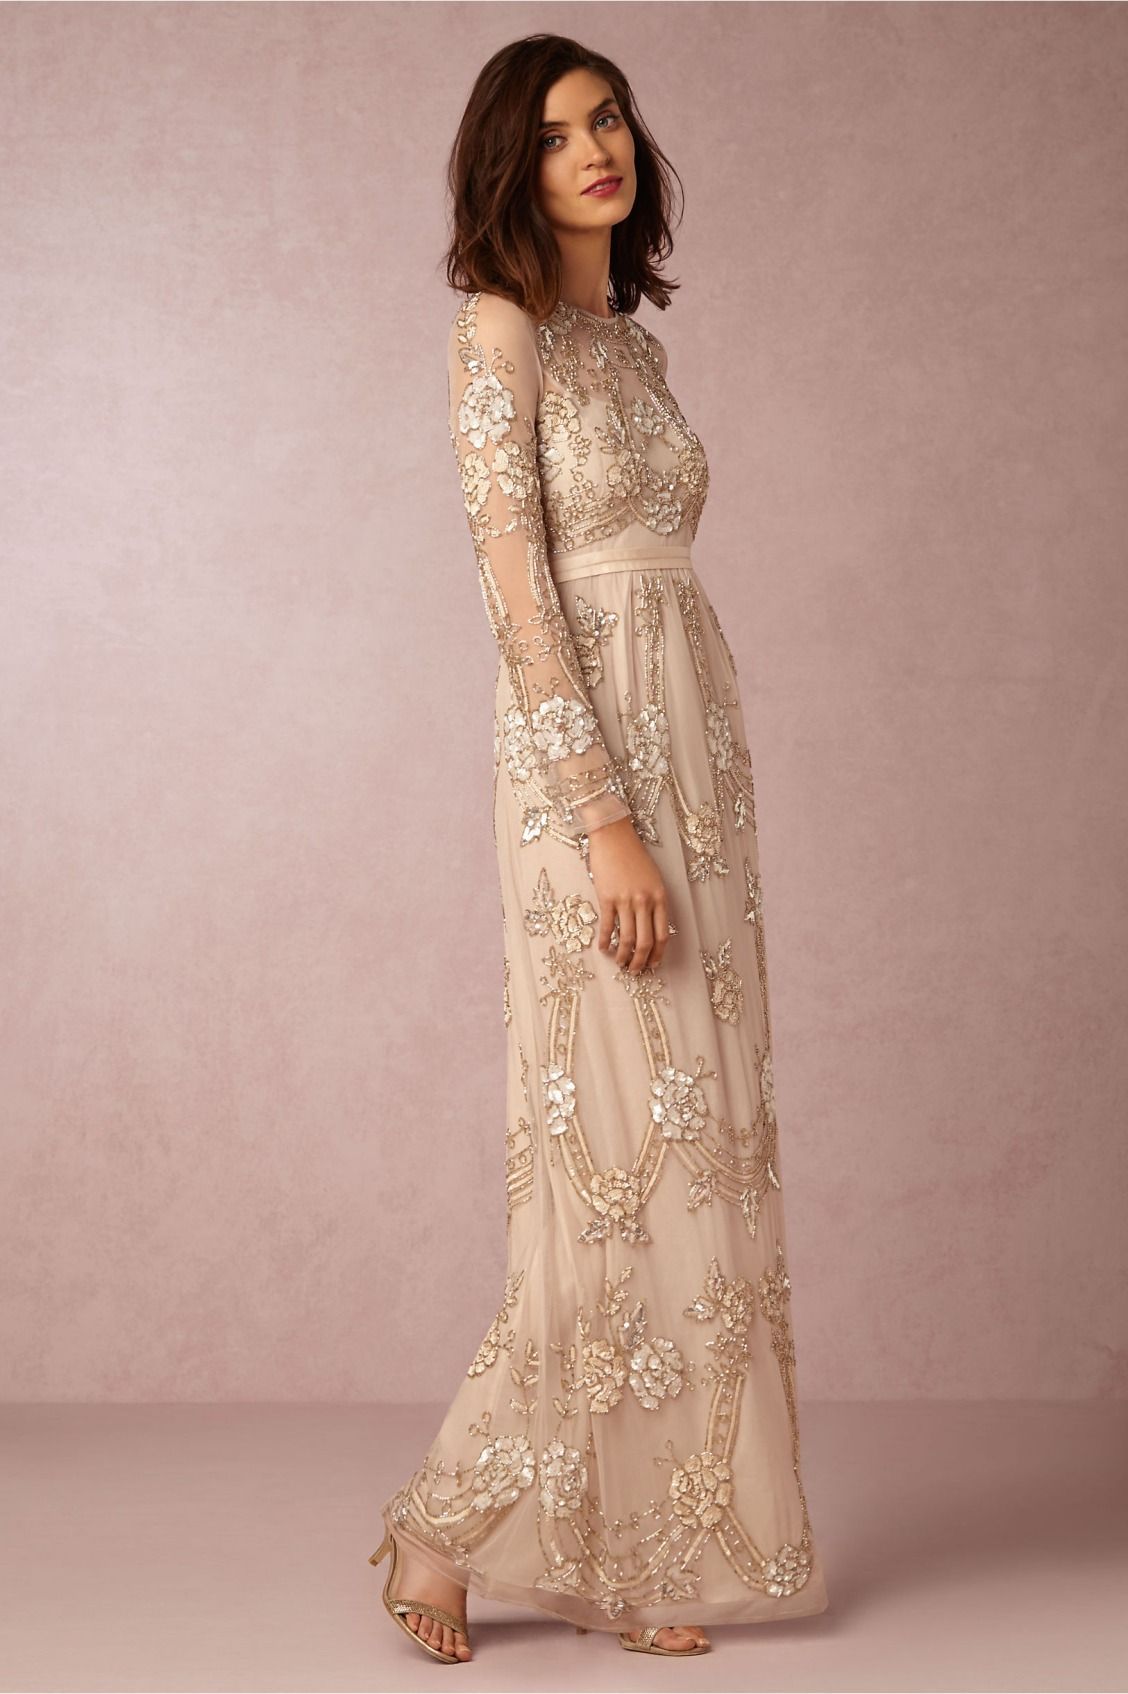 embellished long sleeves | Adona Dress from BHLDN | Beldi ...